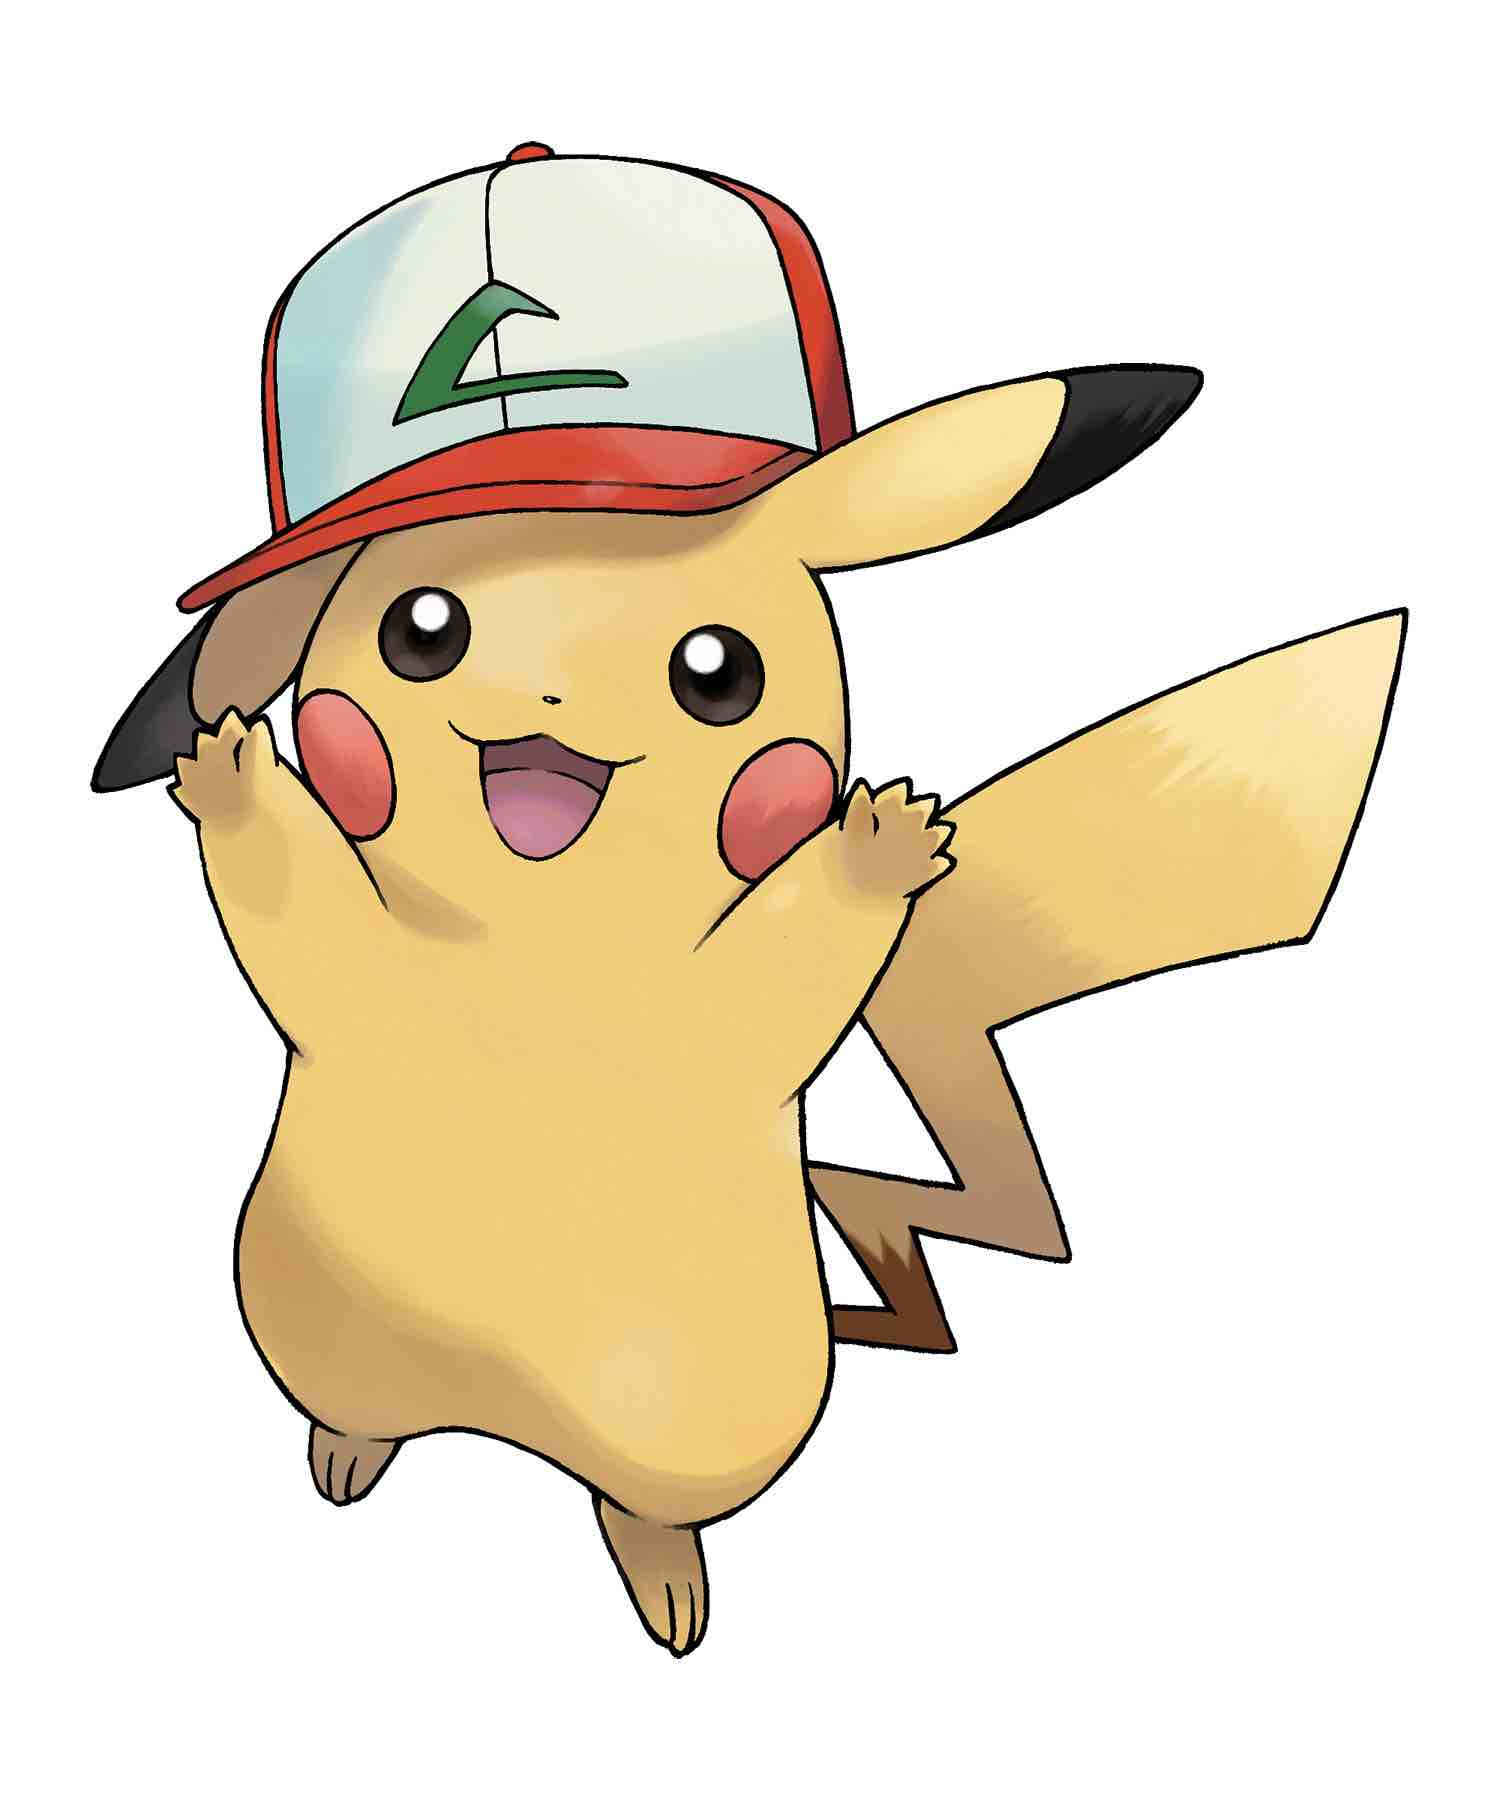 Worldmap as well Ash Hat Pikachu Distribution Events Hit Europe And North America This Month as well 1767553945027880660 furthermore 149618 additionally Arbok Charizard Vore 492030804. on original pokemon ash